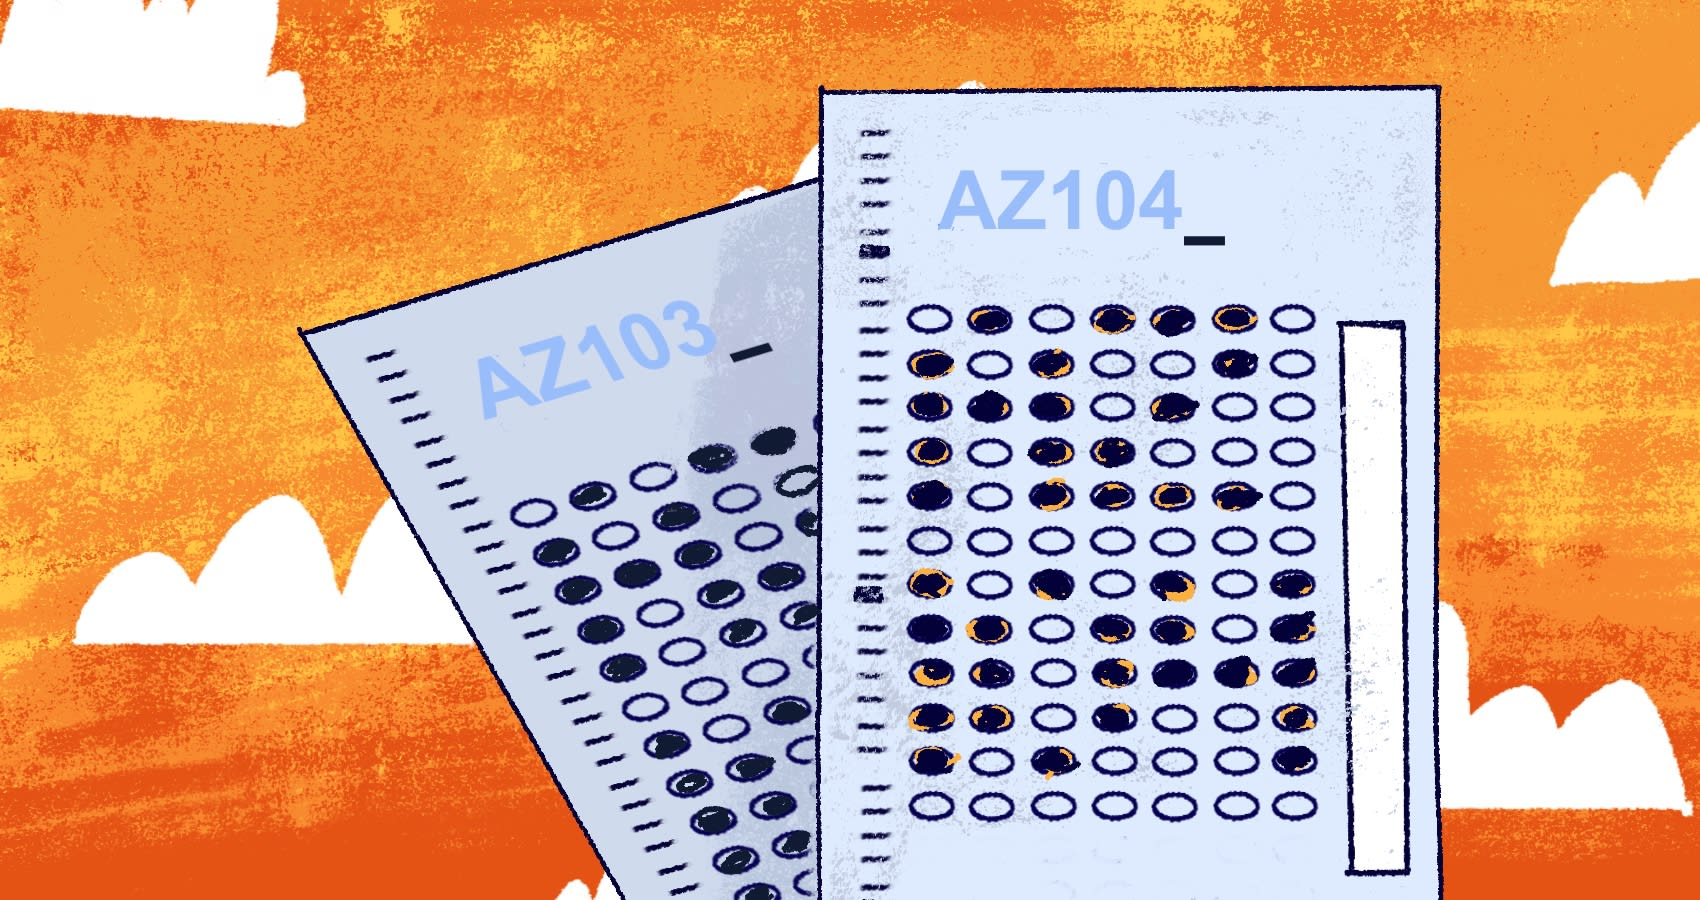 Microsoft Azure AZ-103 vs AZ-104 Changes Explained